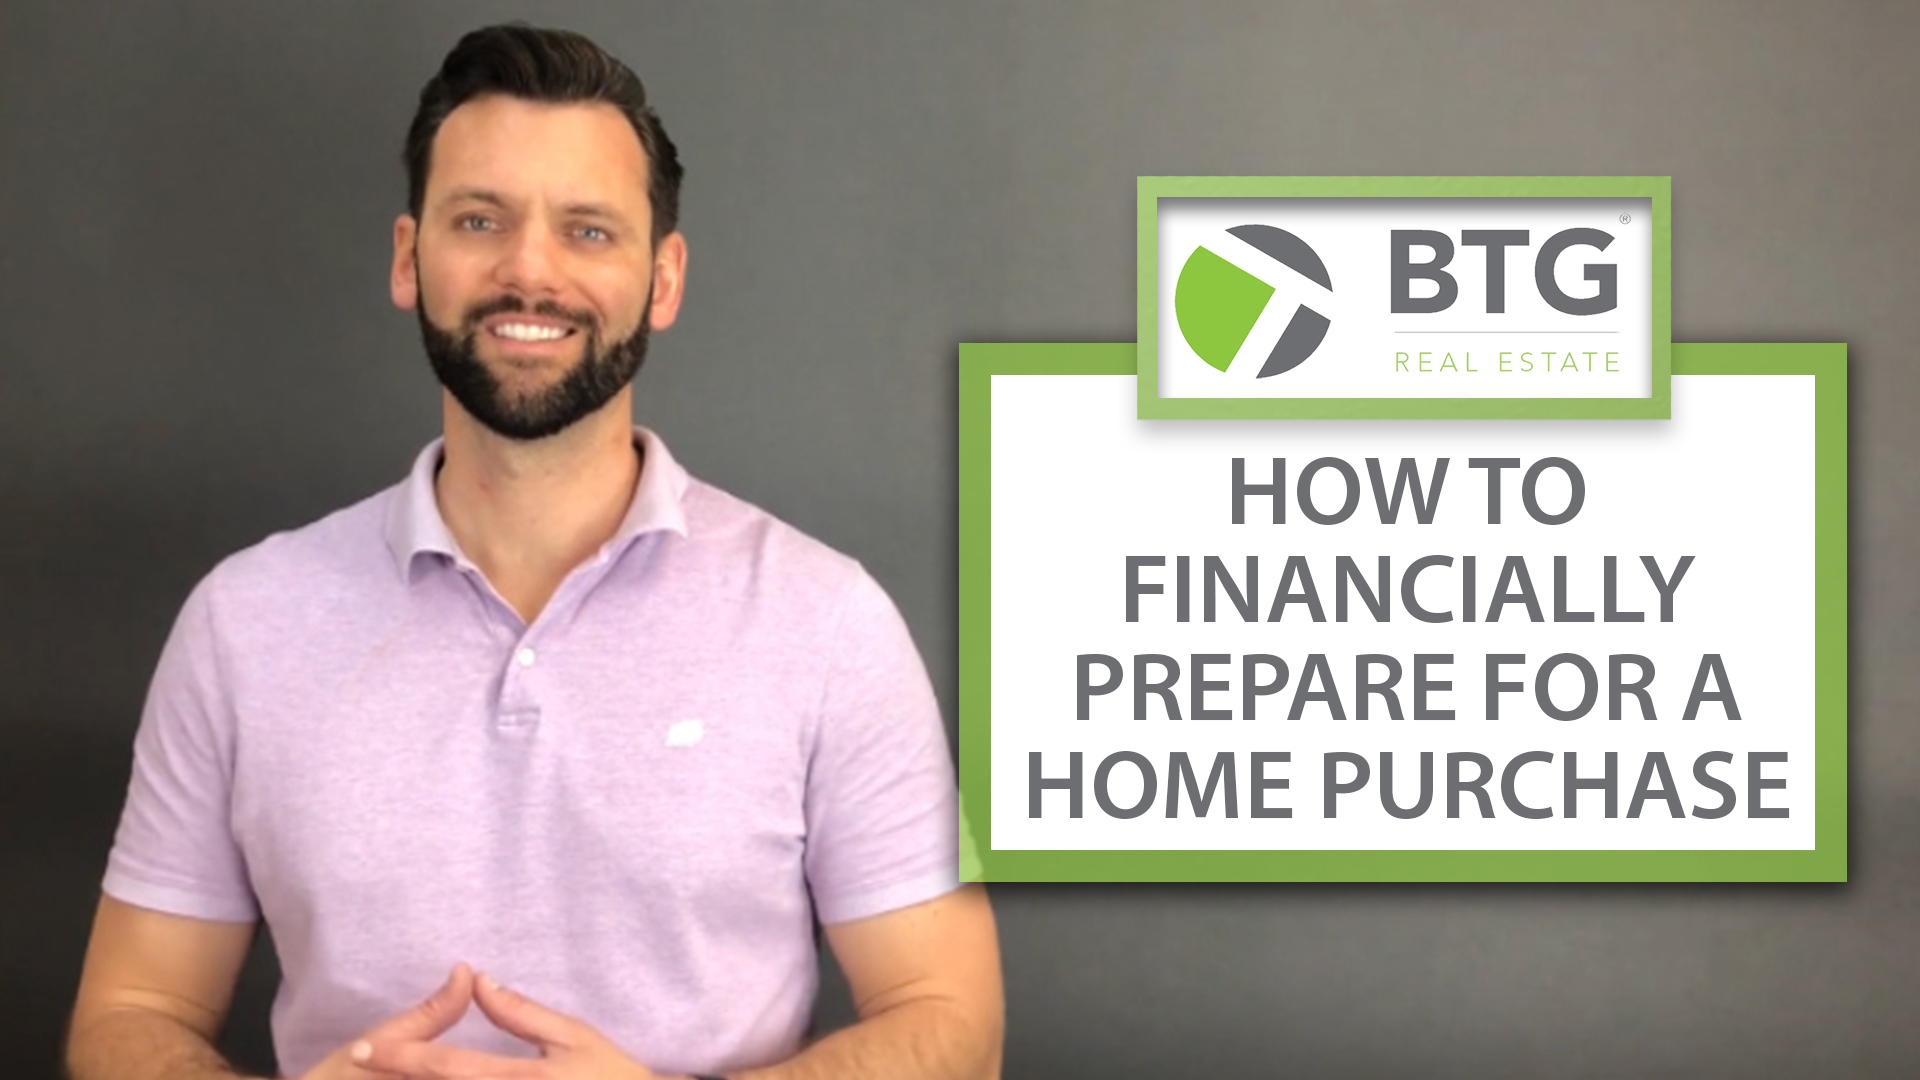 3 Steps to Become a Financially Prepared Homebuyer